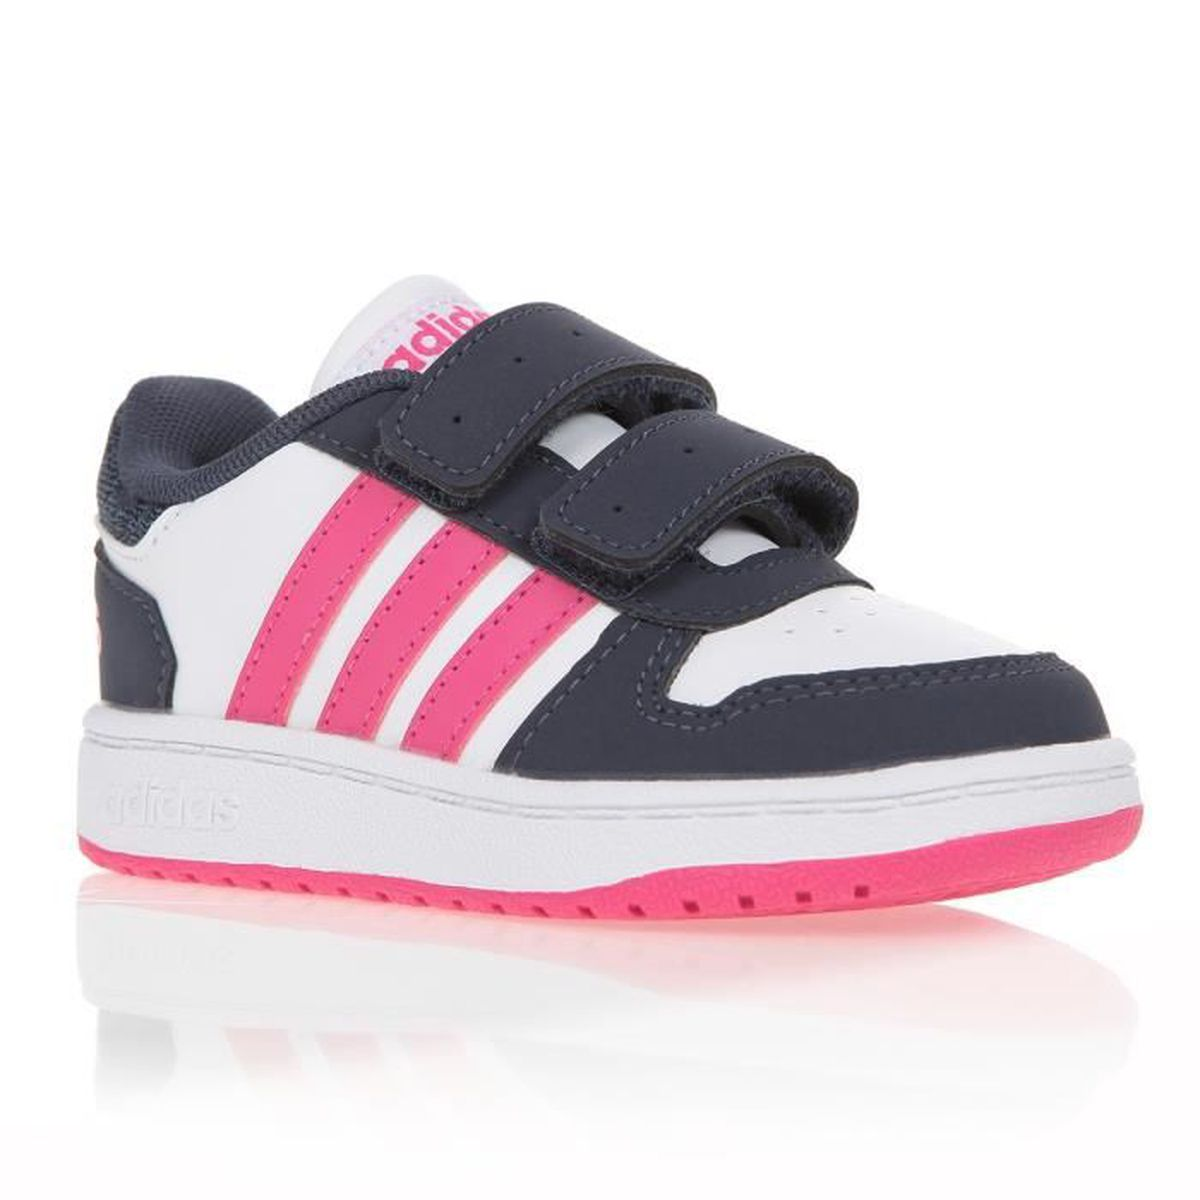 dbf44a150674e Chaussure fille adidas bebe - Achat   Vente pas cher